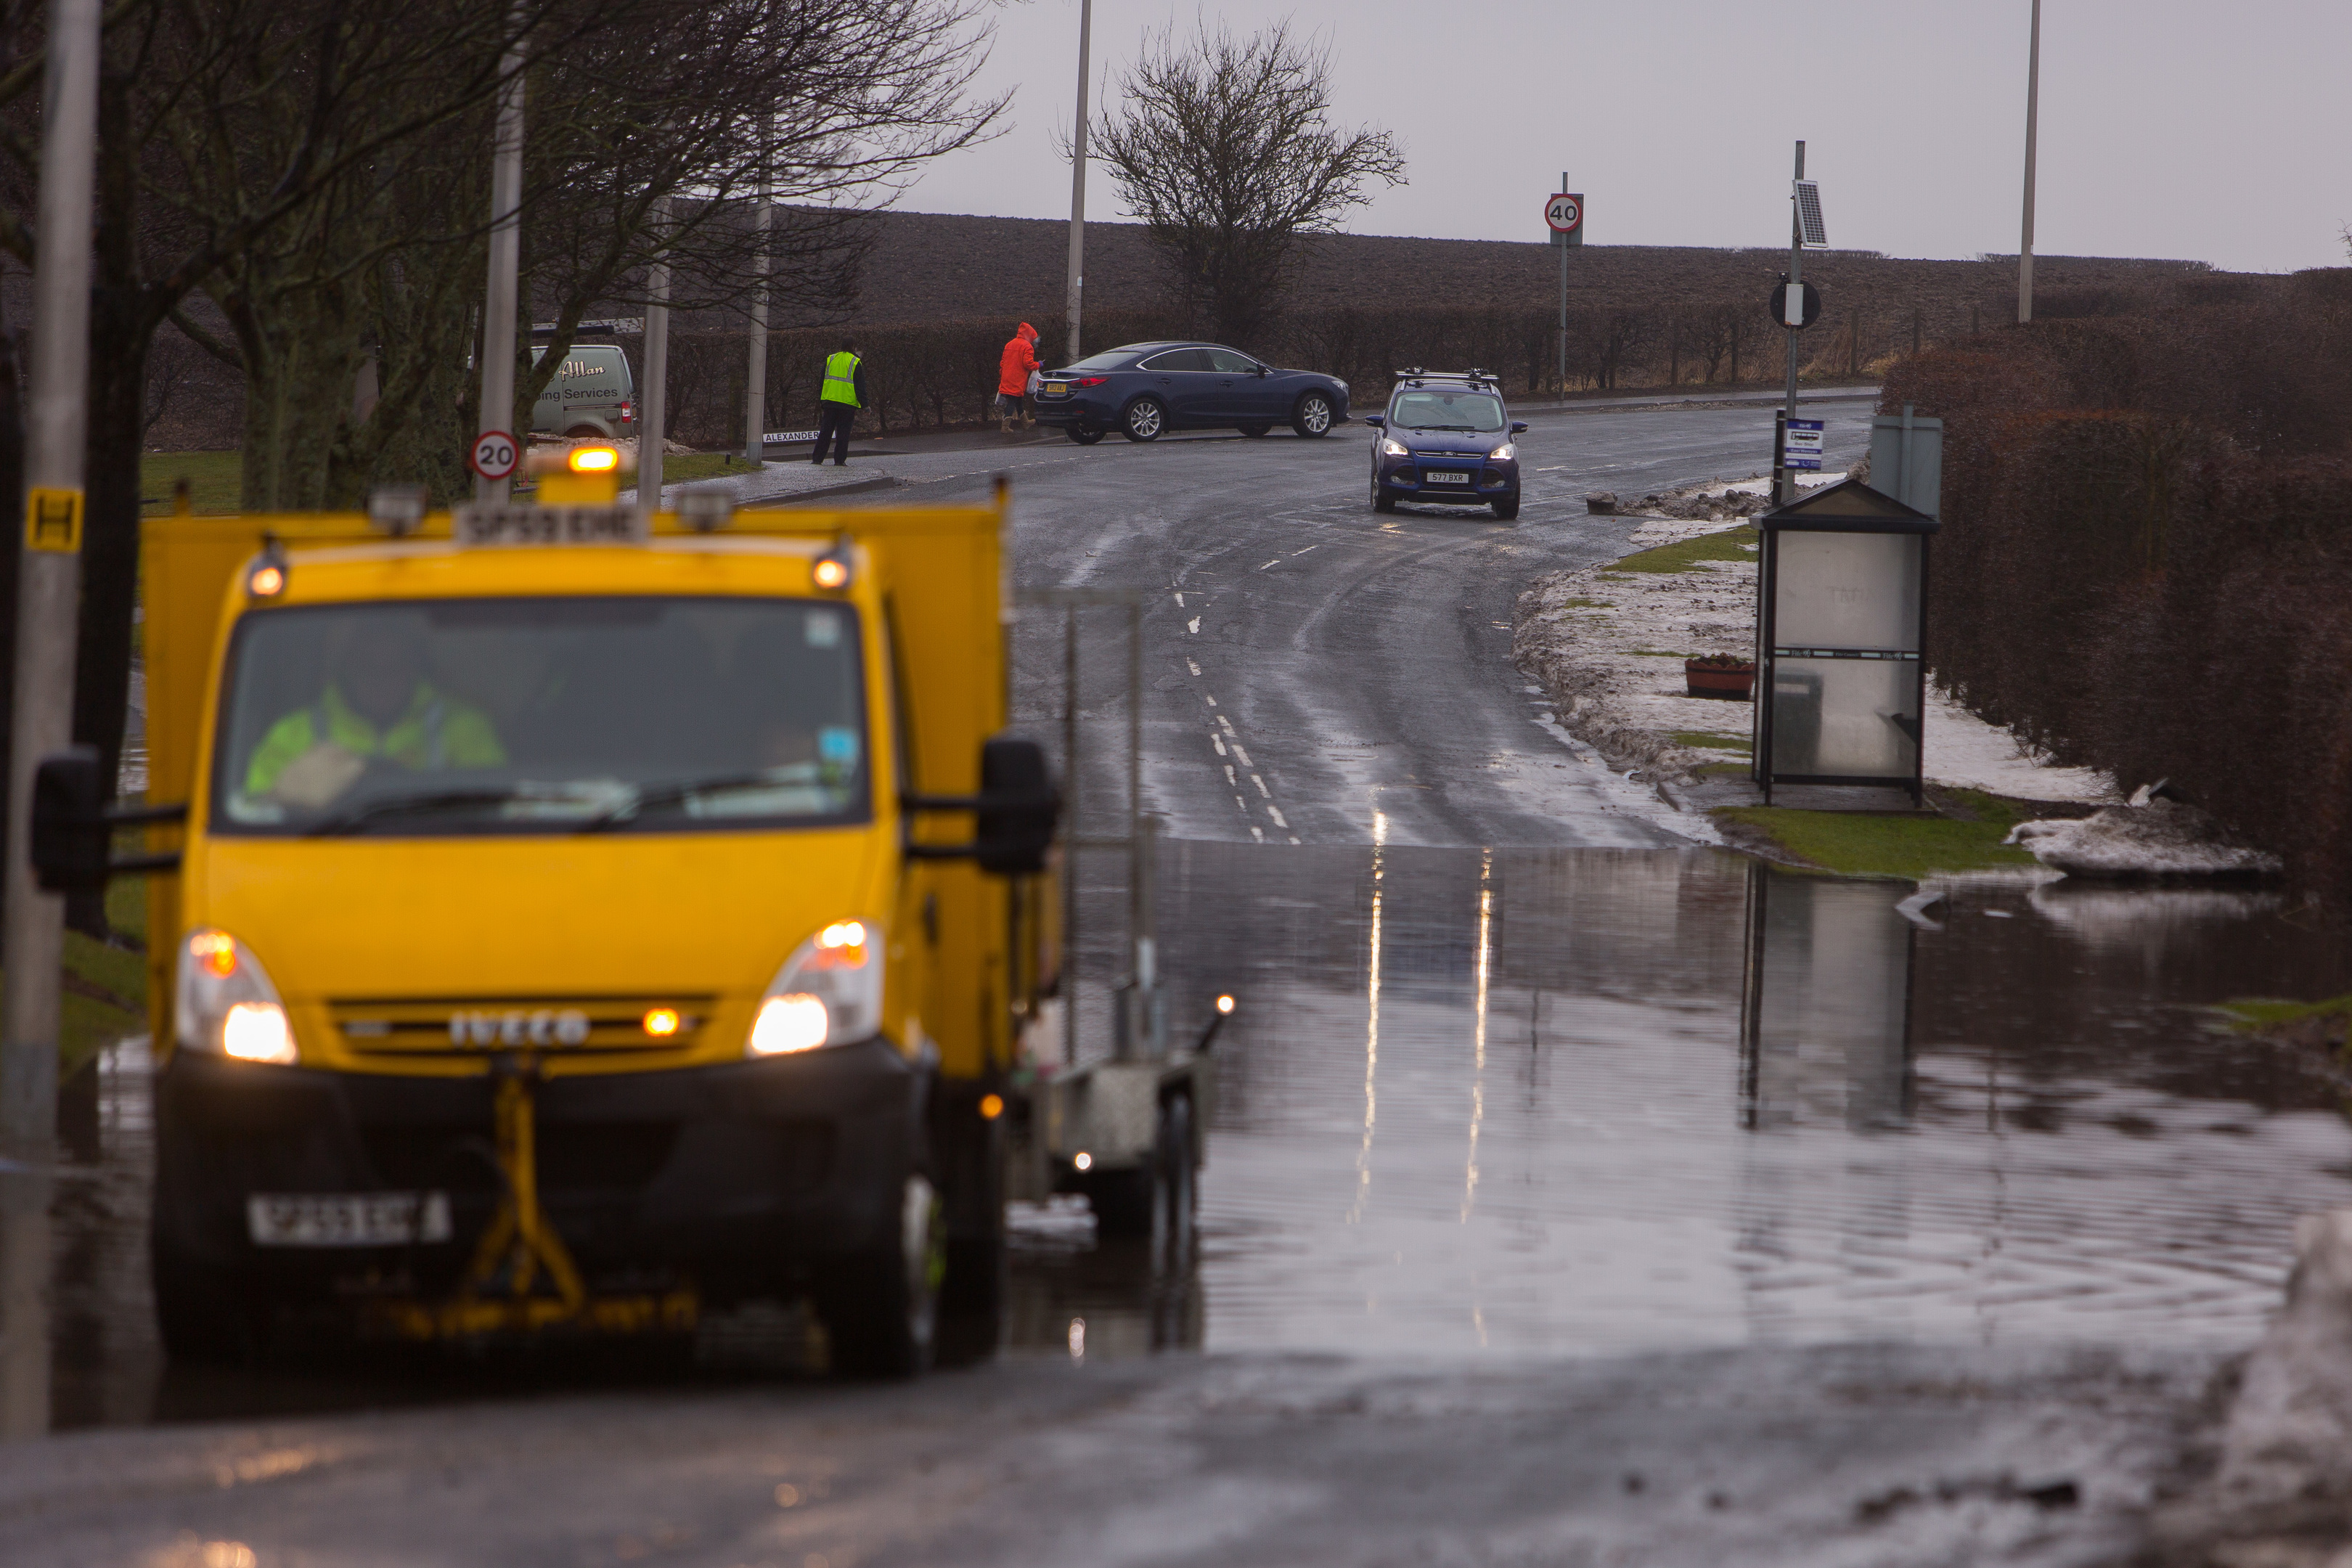 Flooding in East Wemyss.